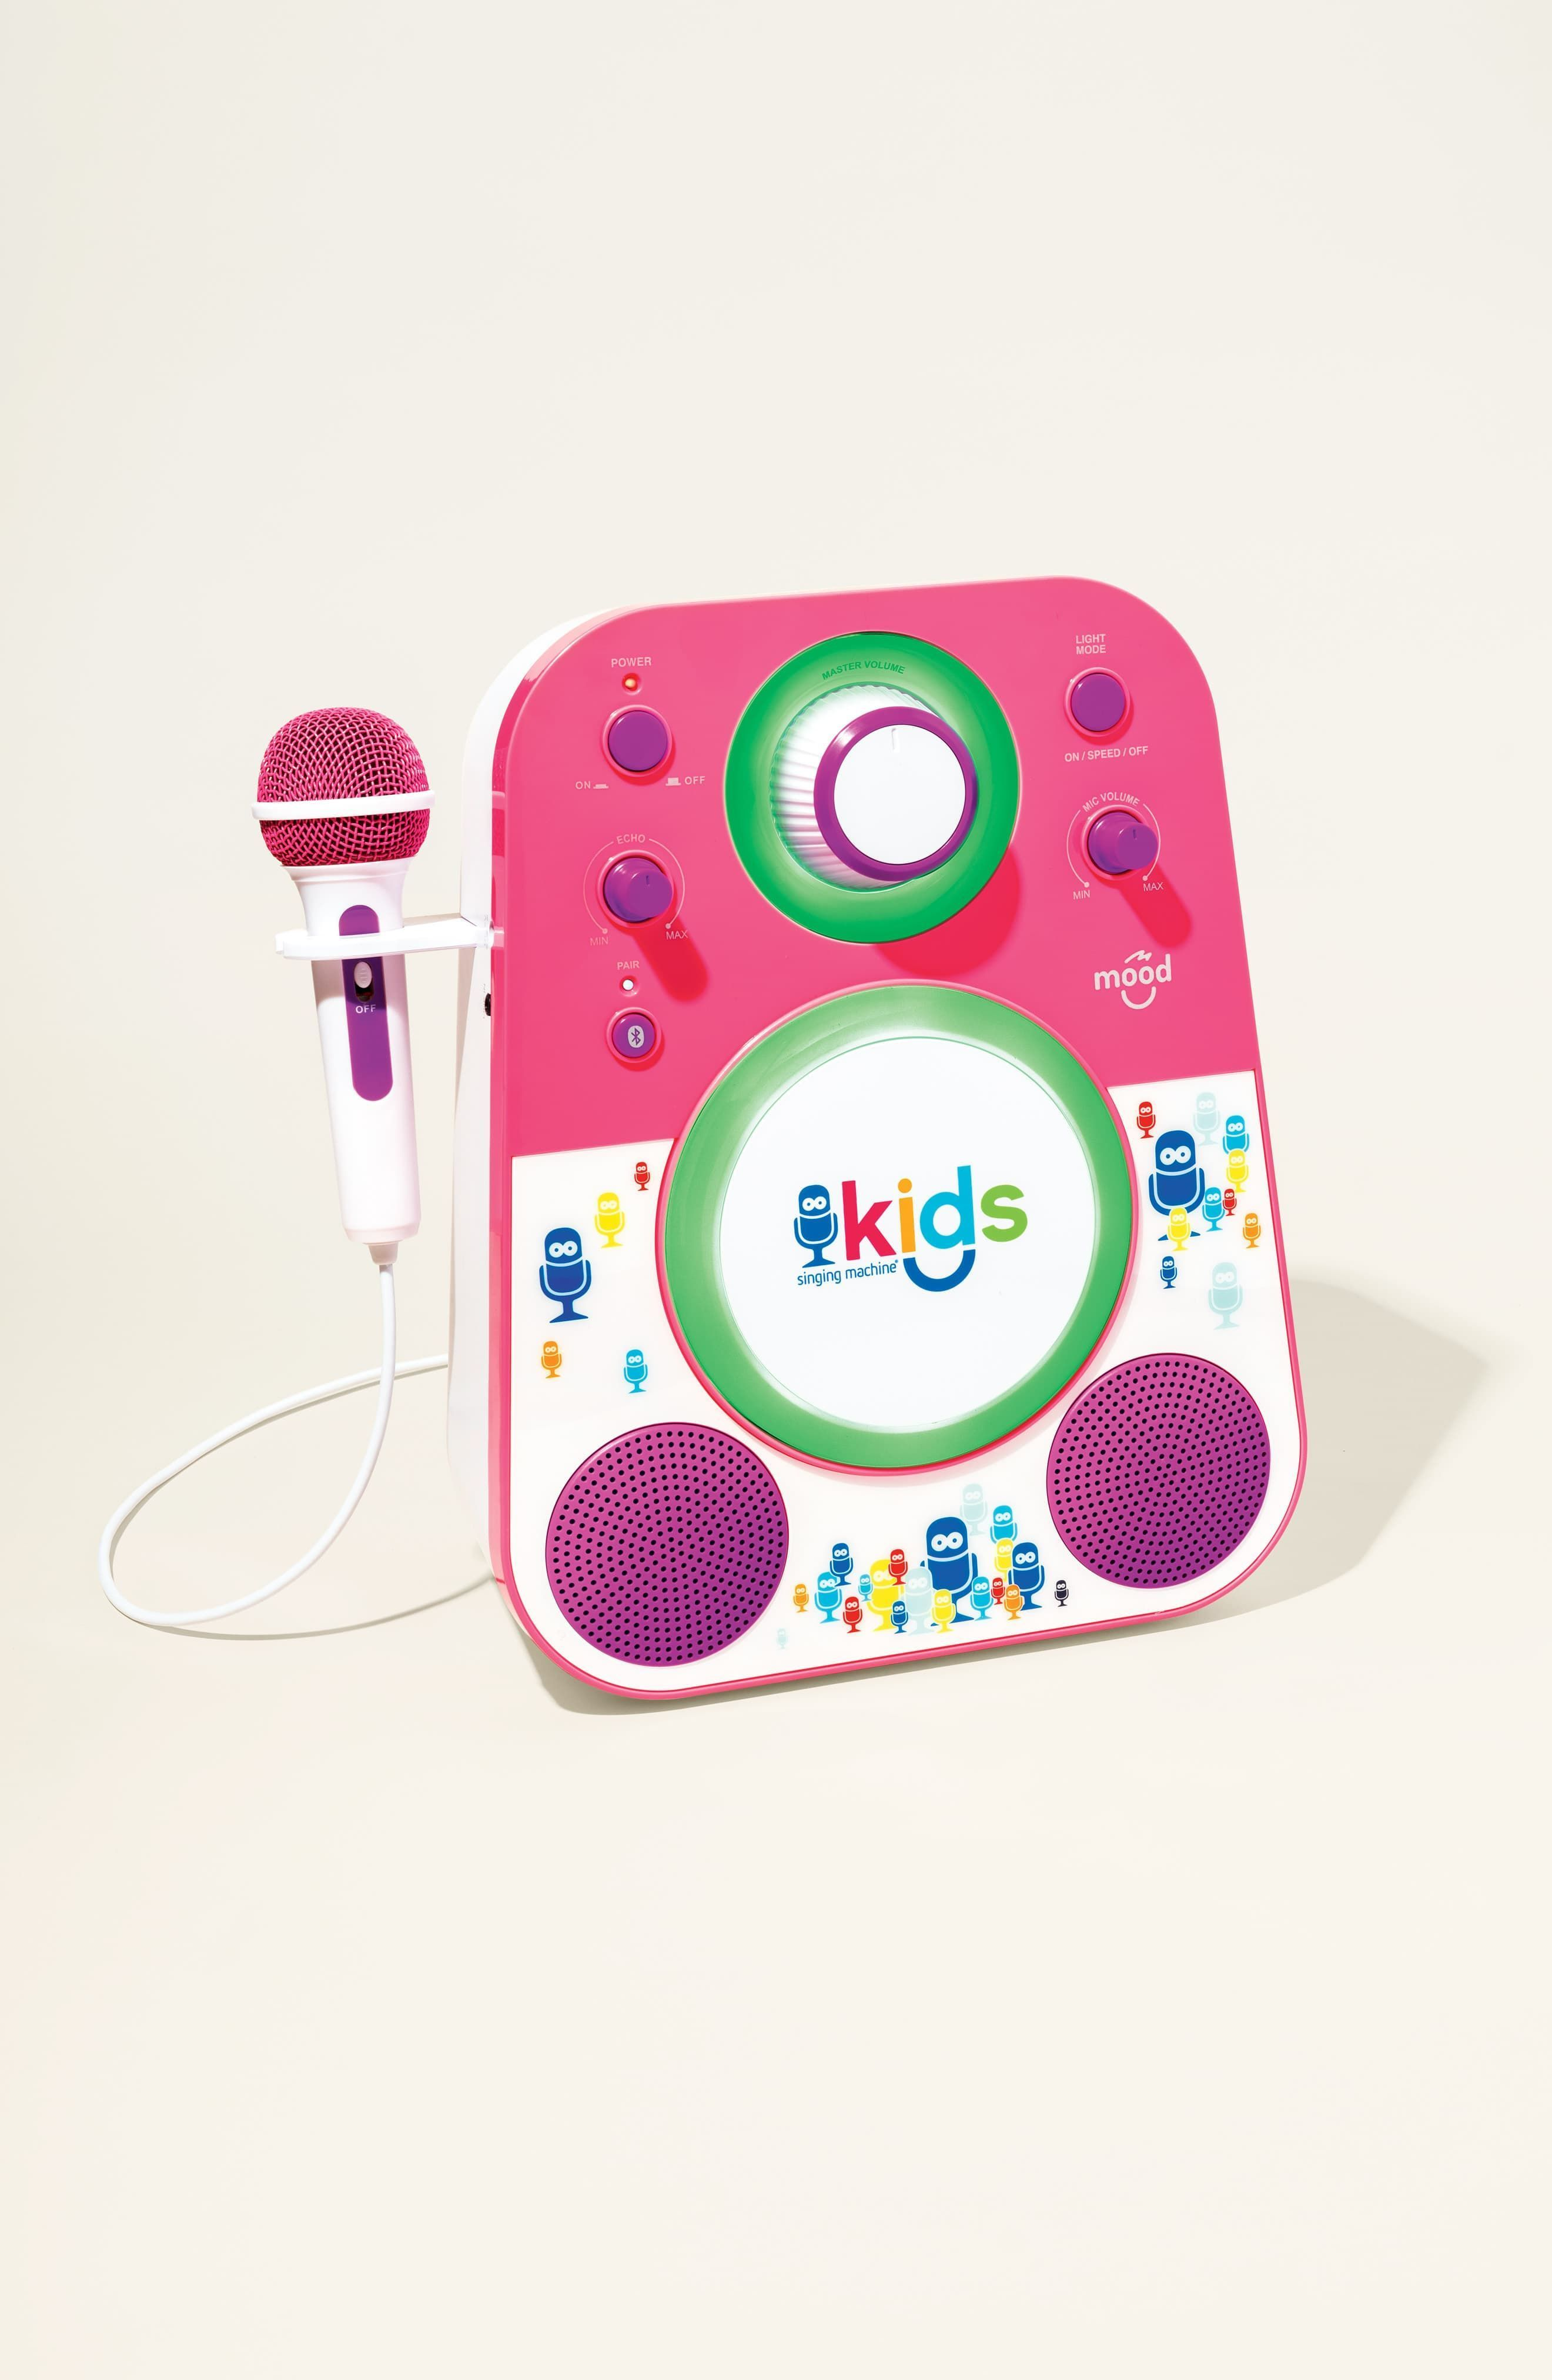 Boy's Singing Machine Kids Mood Karaoke System #karaokesystem Boy's Singing Machine Kids Mood Karaoke System #karaokesystem Boy's Singing Machine Kids Mood Karaoke System #karaokesystem Boy's Singing Machine Kids Mood Karaoke System #karaokesystem